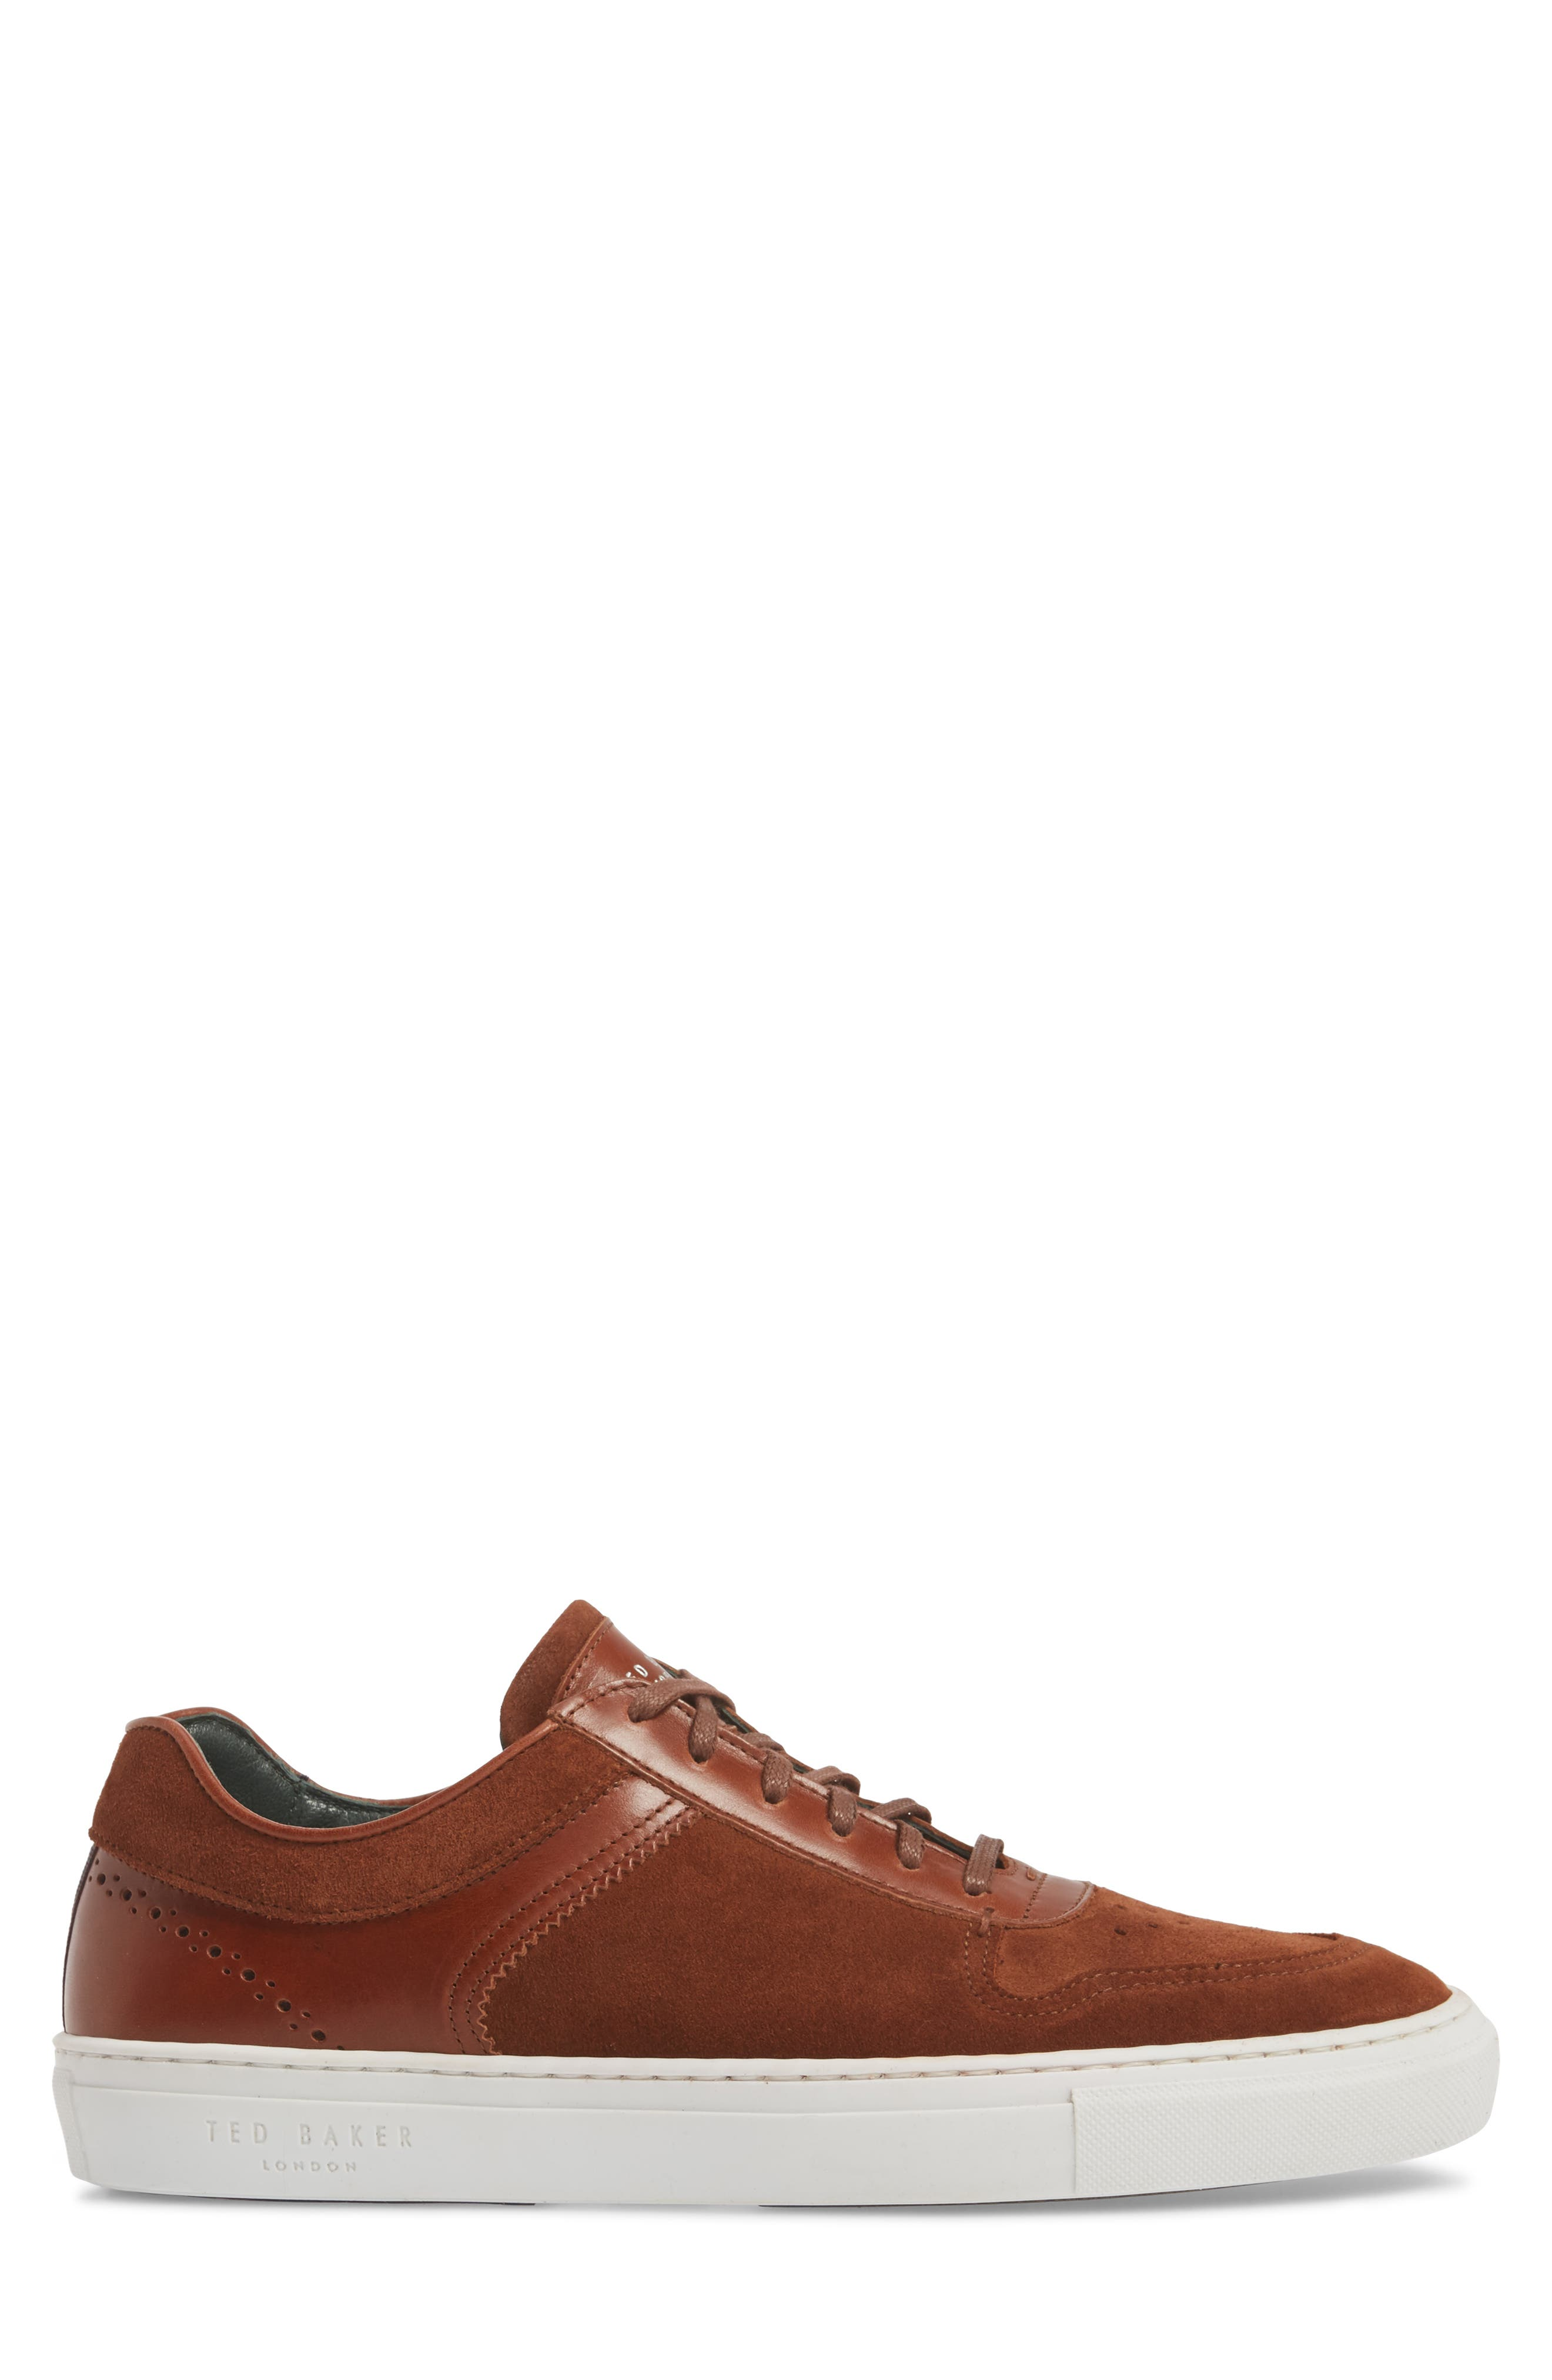 Burall Sneaker,                             Alternate thumbnail 4, color,                             Dark Tan Suede